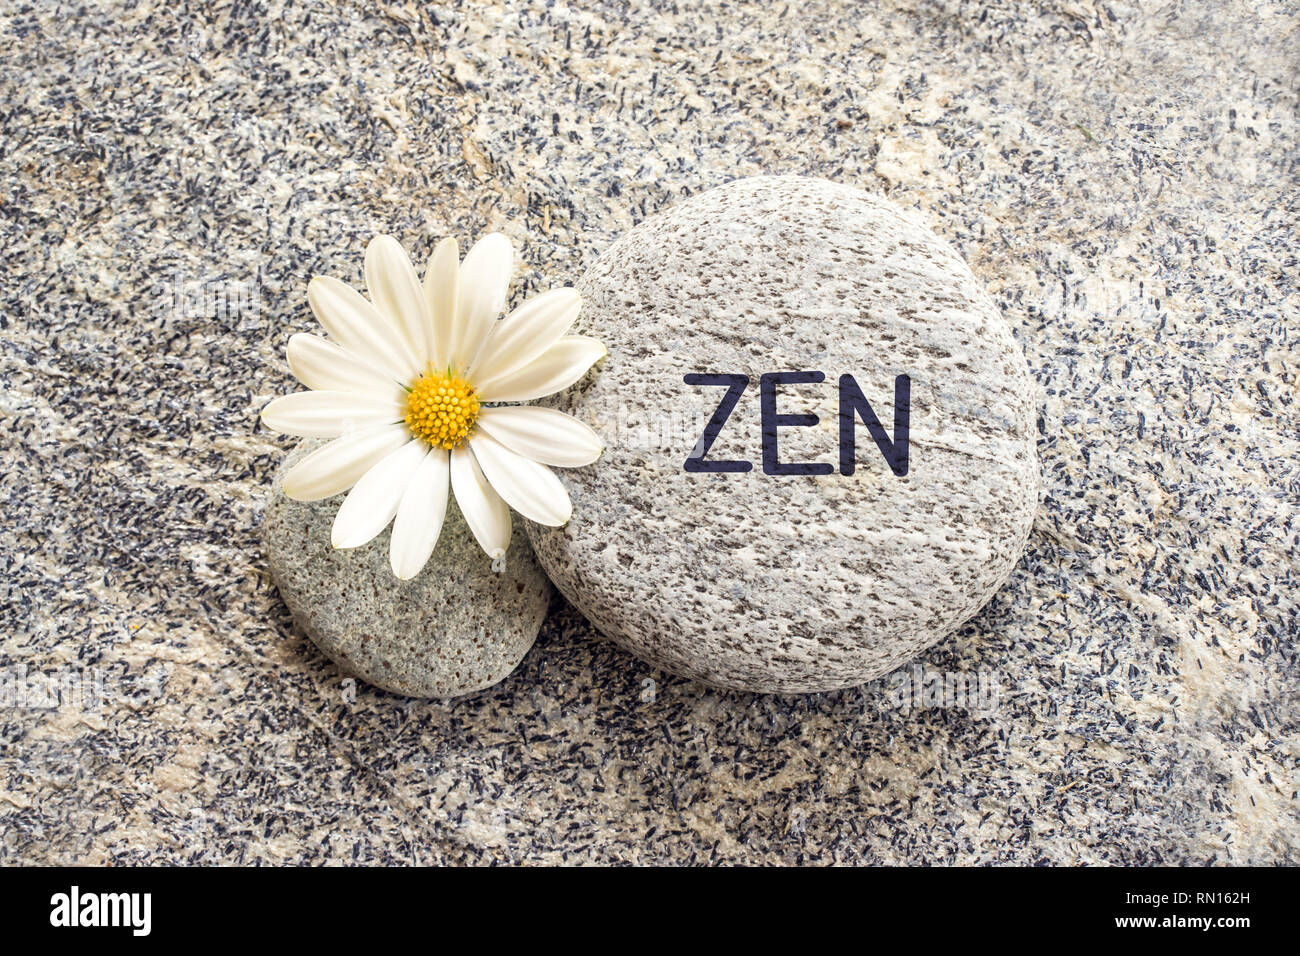 Word zen written on a stone background with a daisy - Stock Image